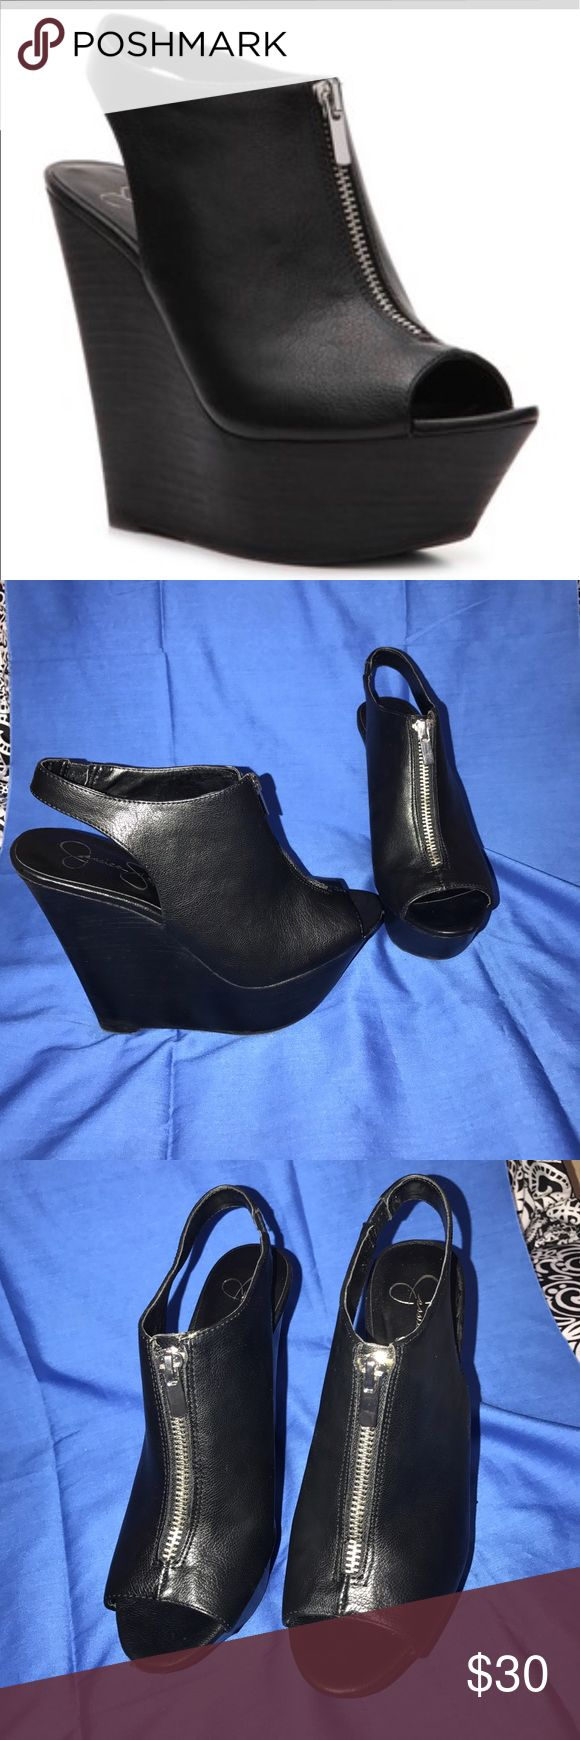 Jessica Simpson wedges size 7M Jessica Simpson wedges JP-Shavon size 7M. These wedges are super edgy and fancy. They do have flaws as shown in pictures of a small scuff in the front and on the side of the left shoe. Jessica Simpson Shoes Wedges